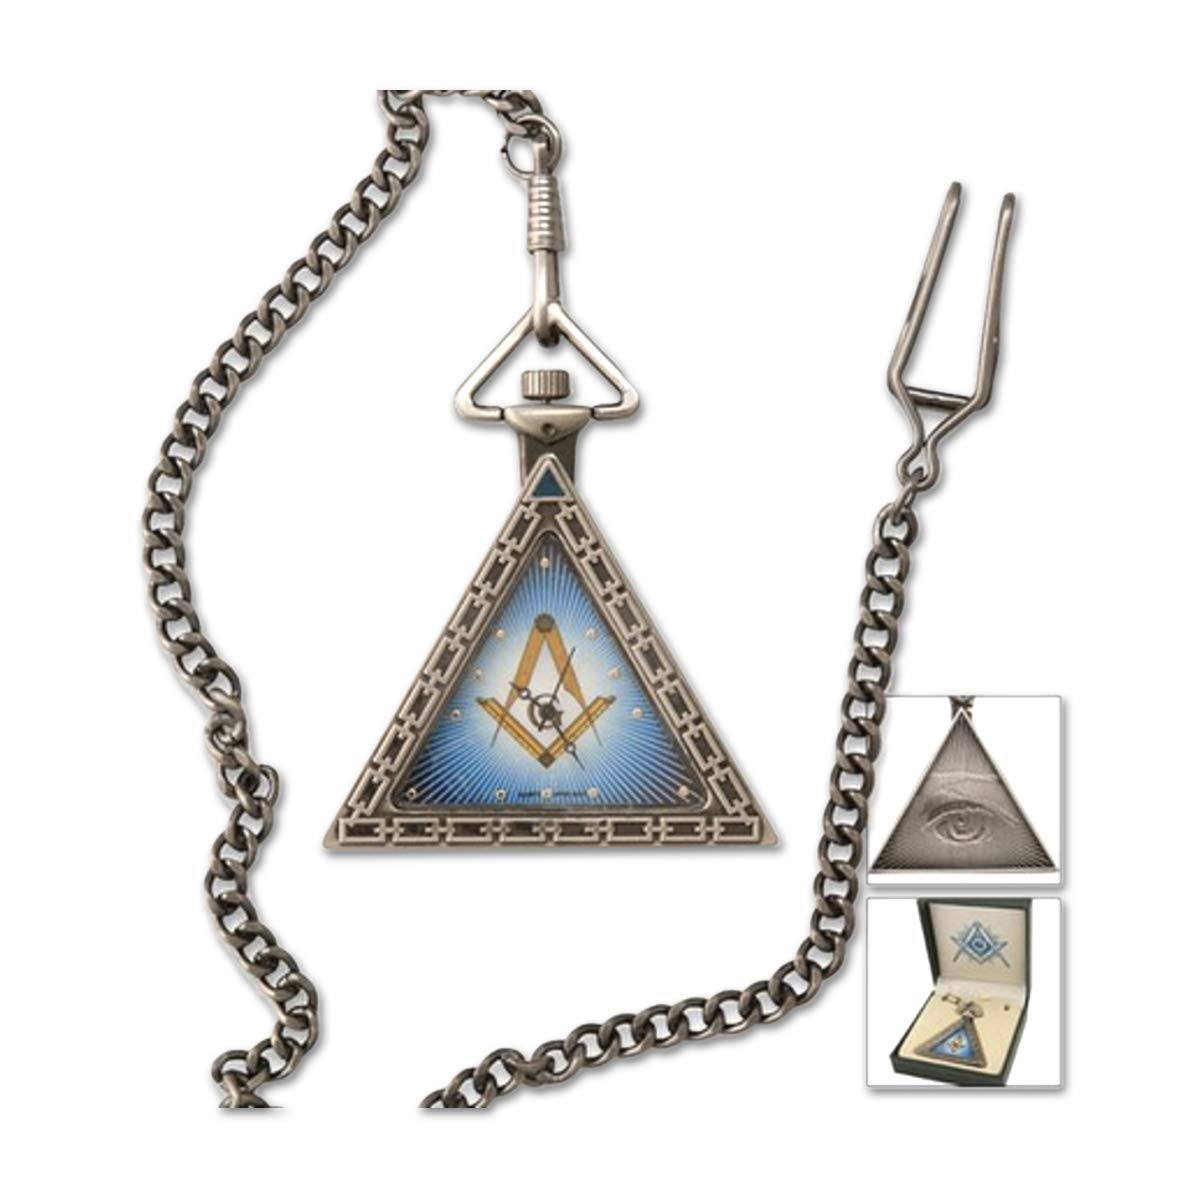 Triangular Square Compass Antique Silver Masonic Pocket Watch – 2 Tall